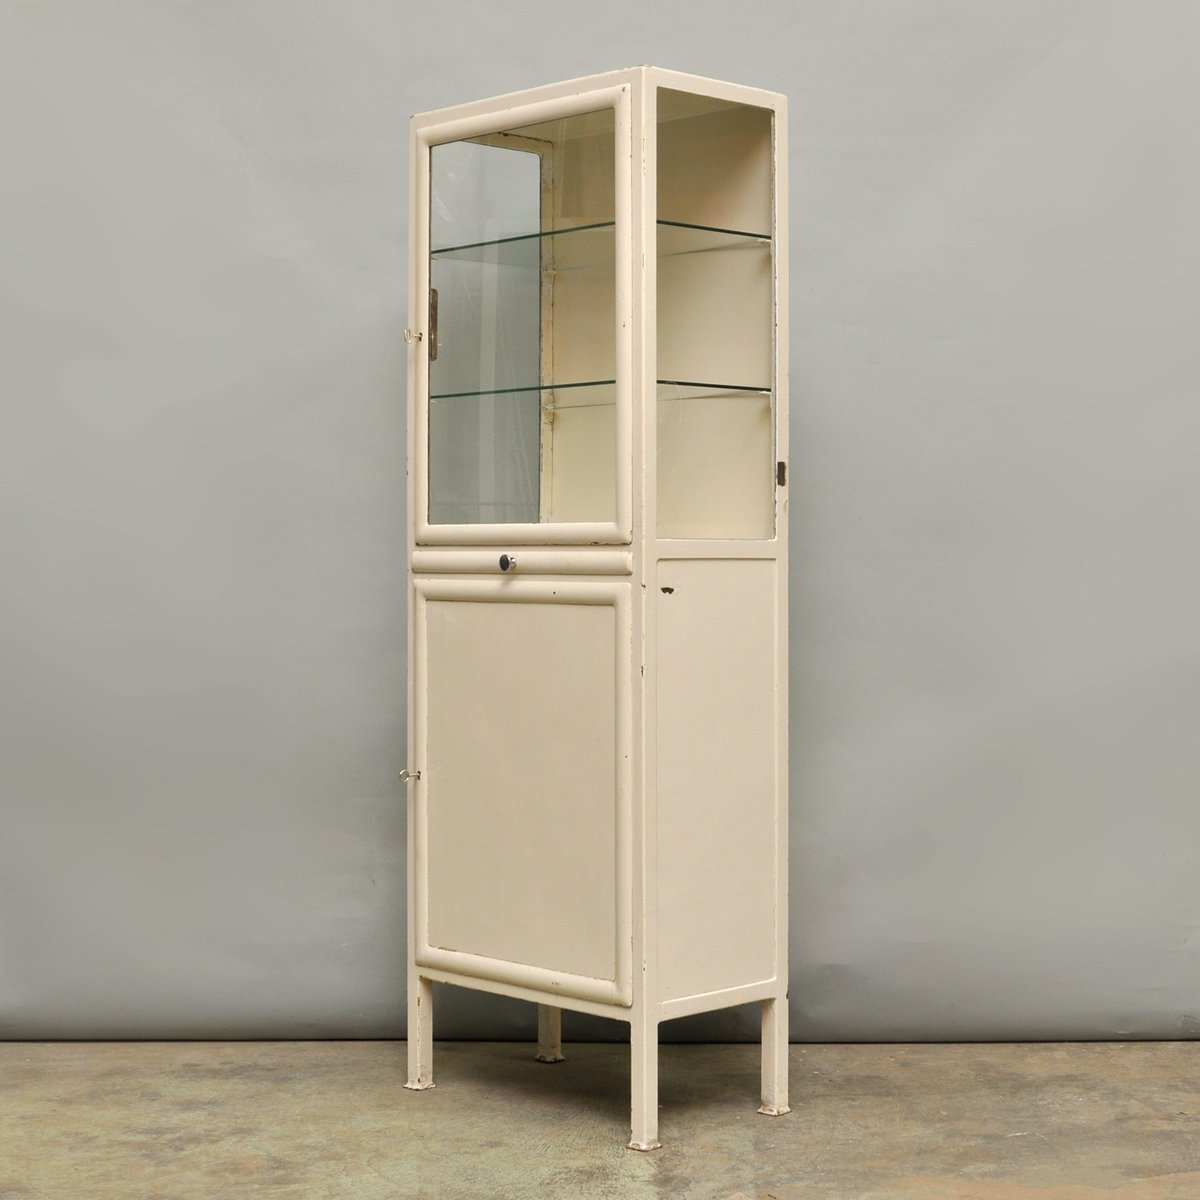 Vintage Medical Cabinet in Iron & Glass, 1940s for sale at Pamono